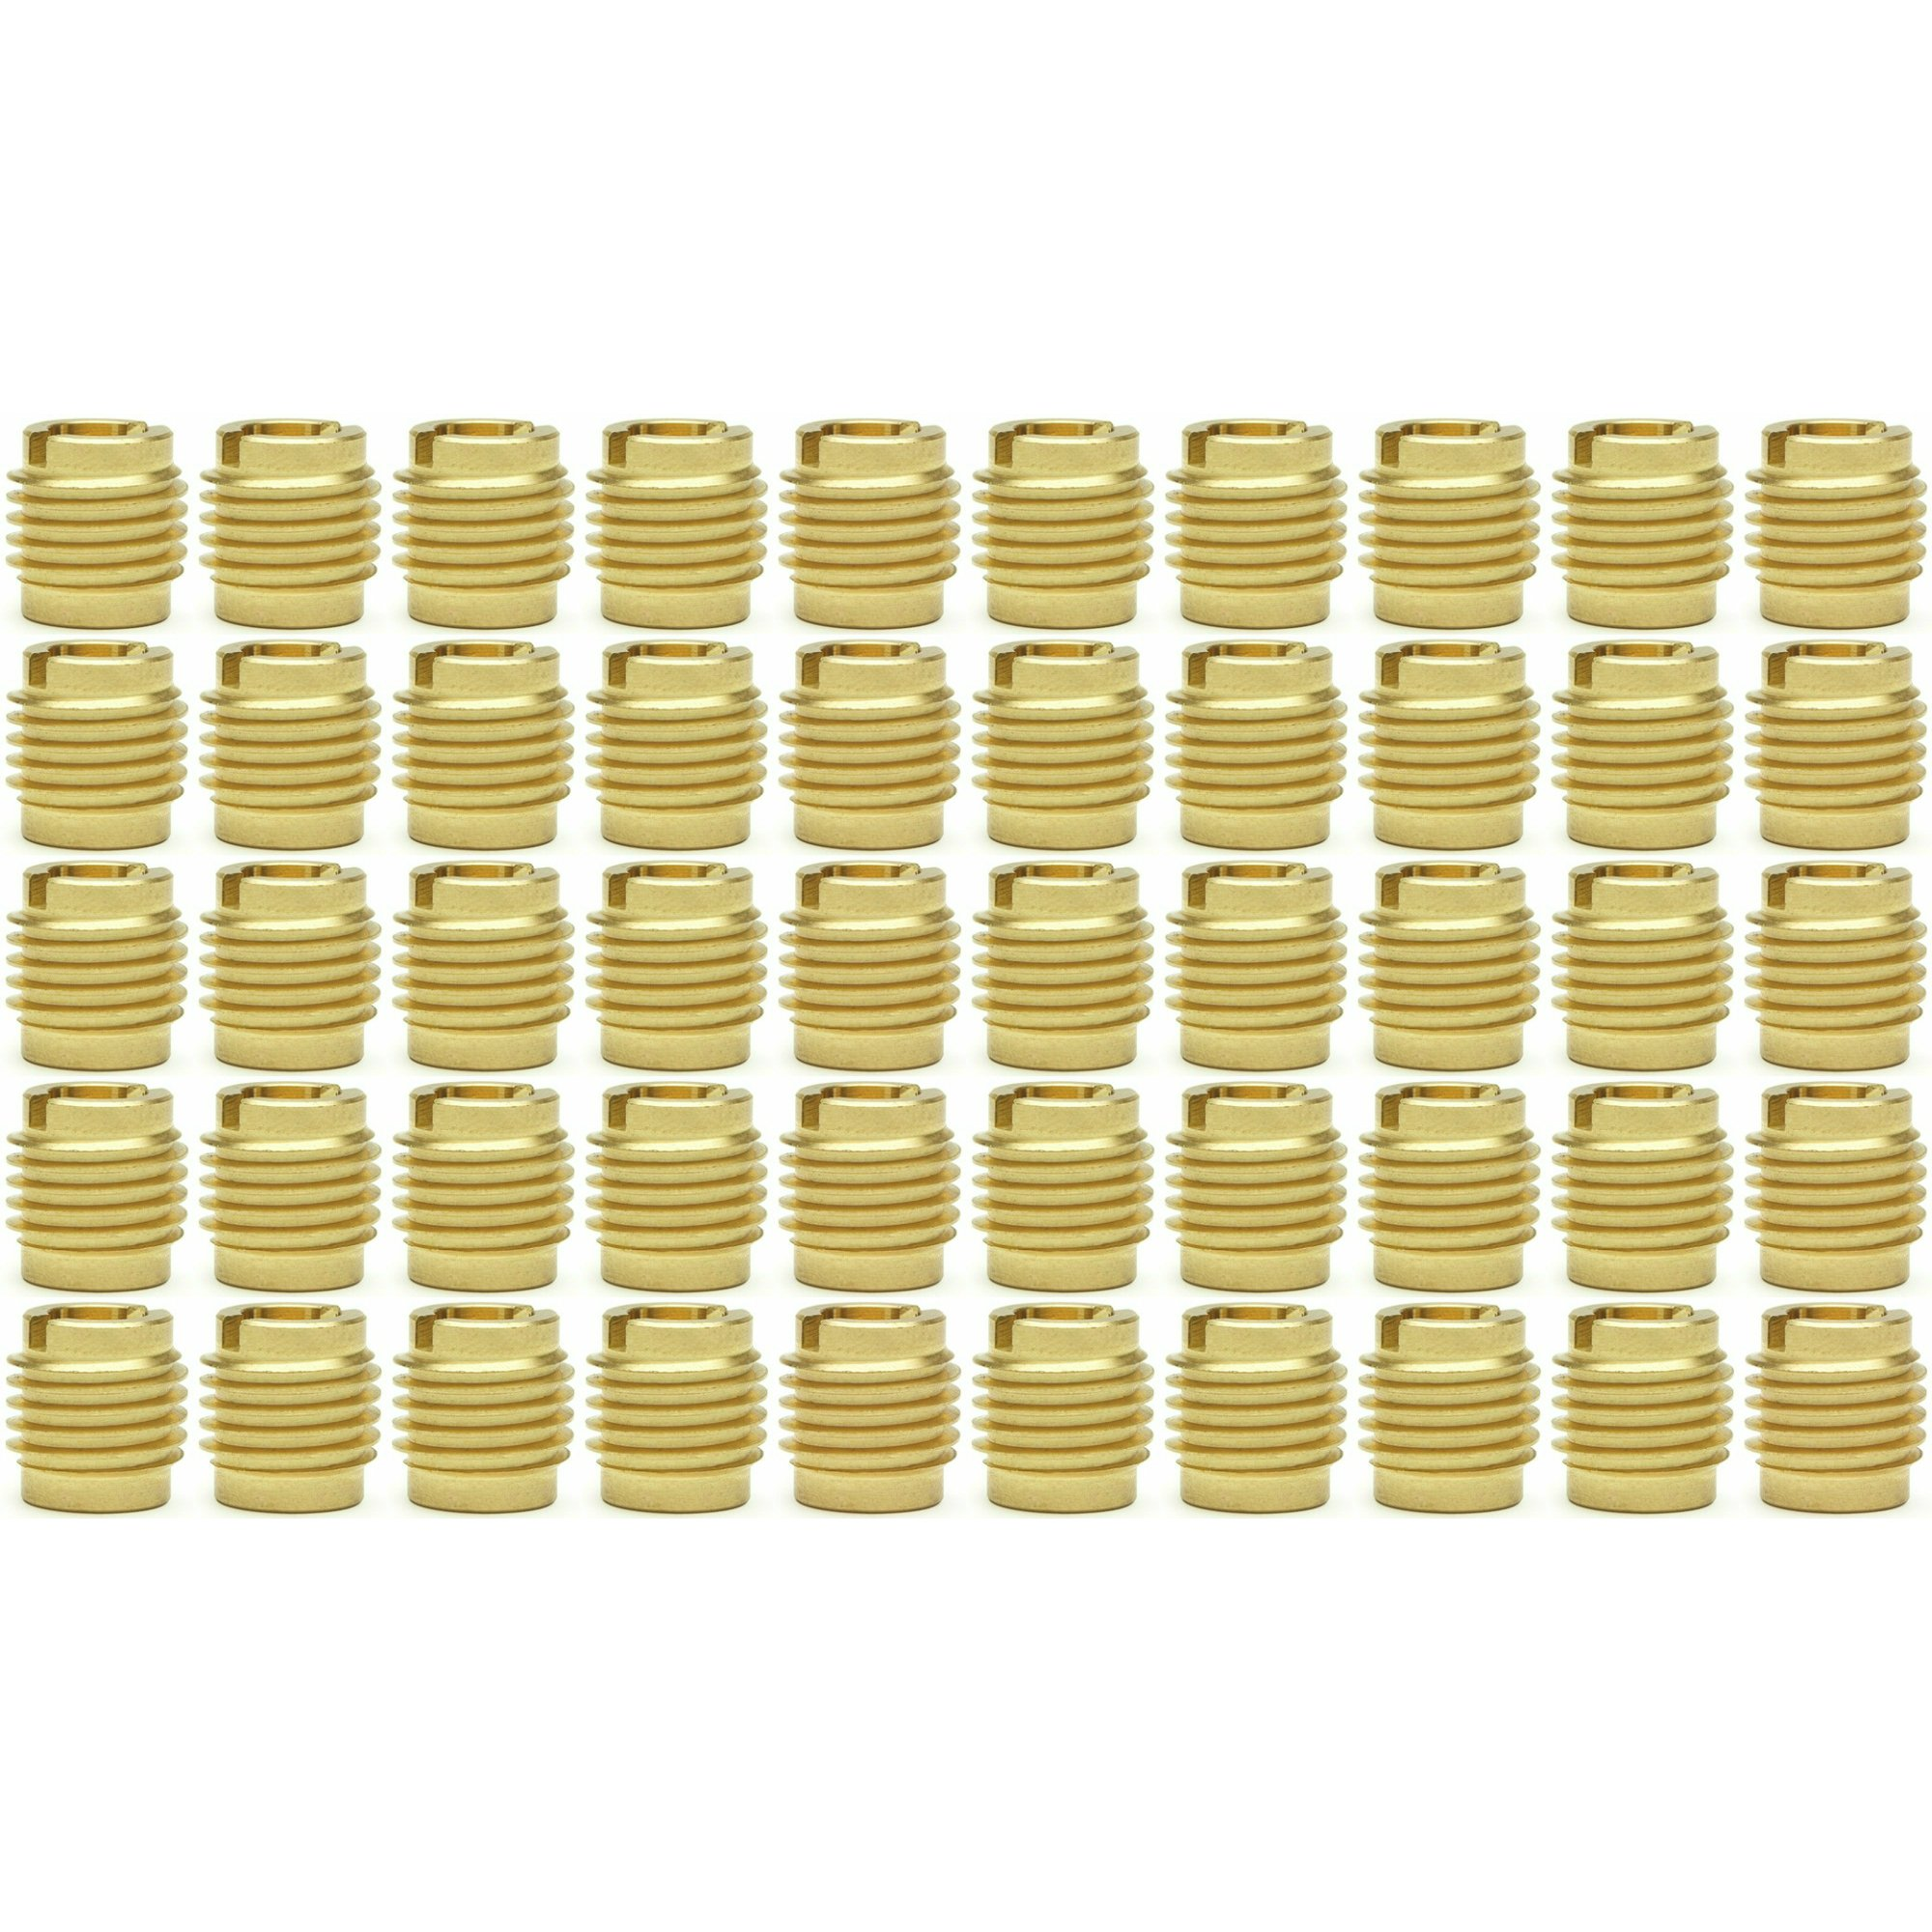 """Fifty (50) #8-32 Brass Threaded Inserts For Wood 